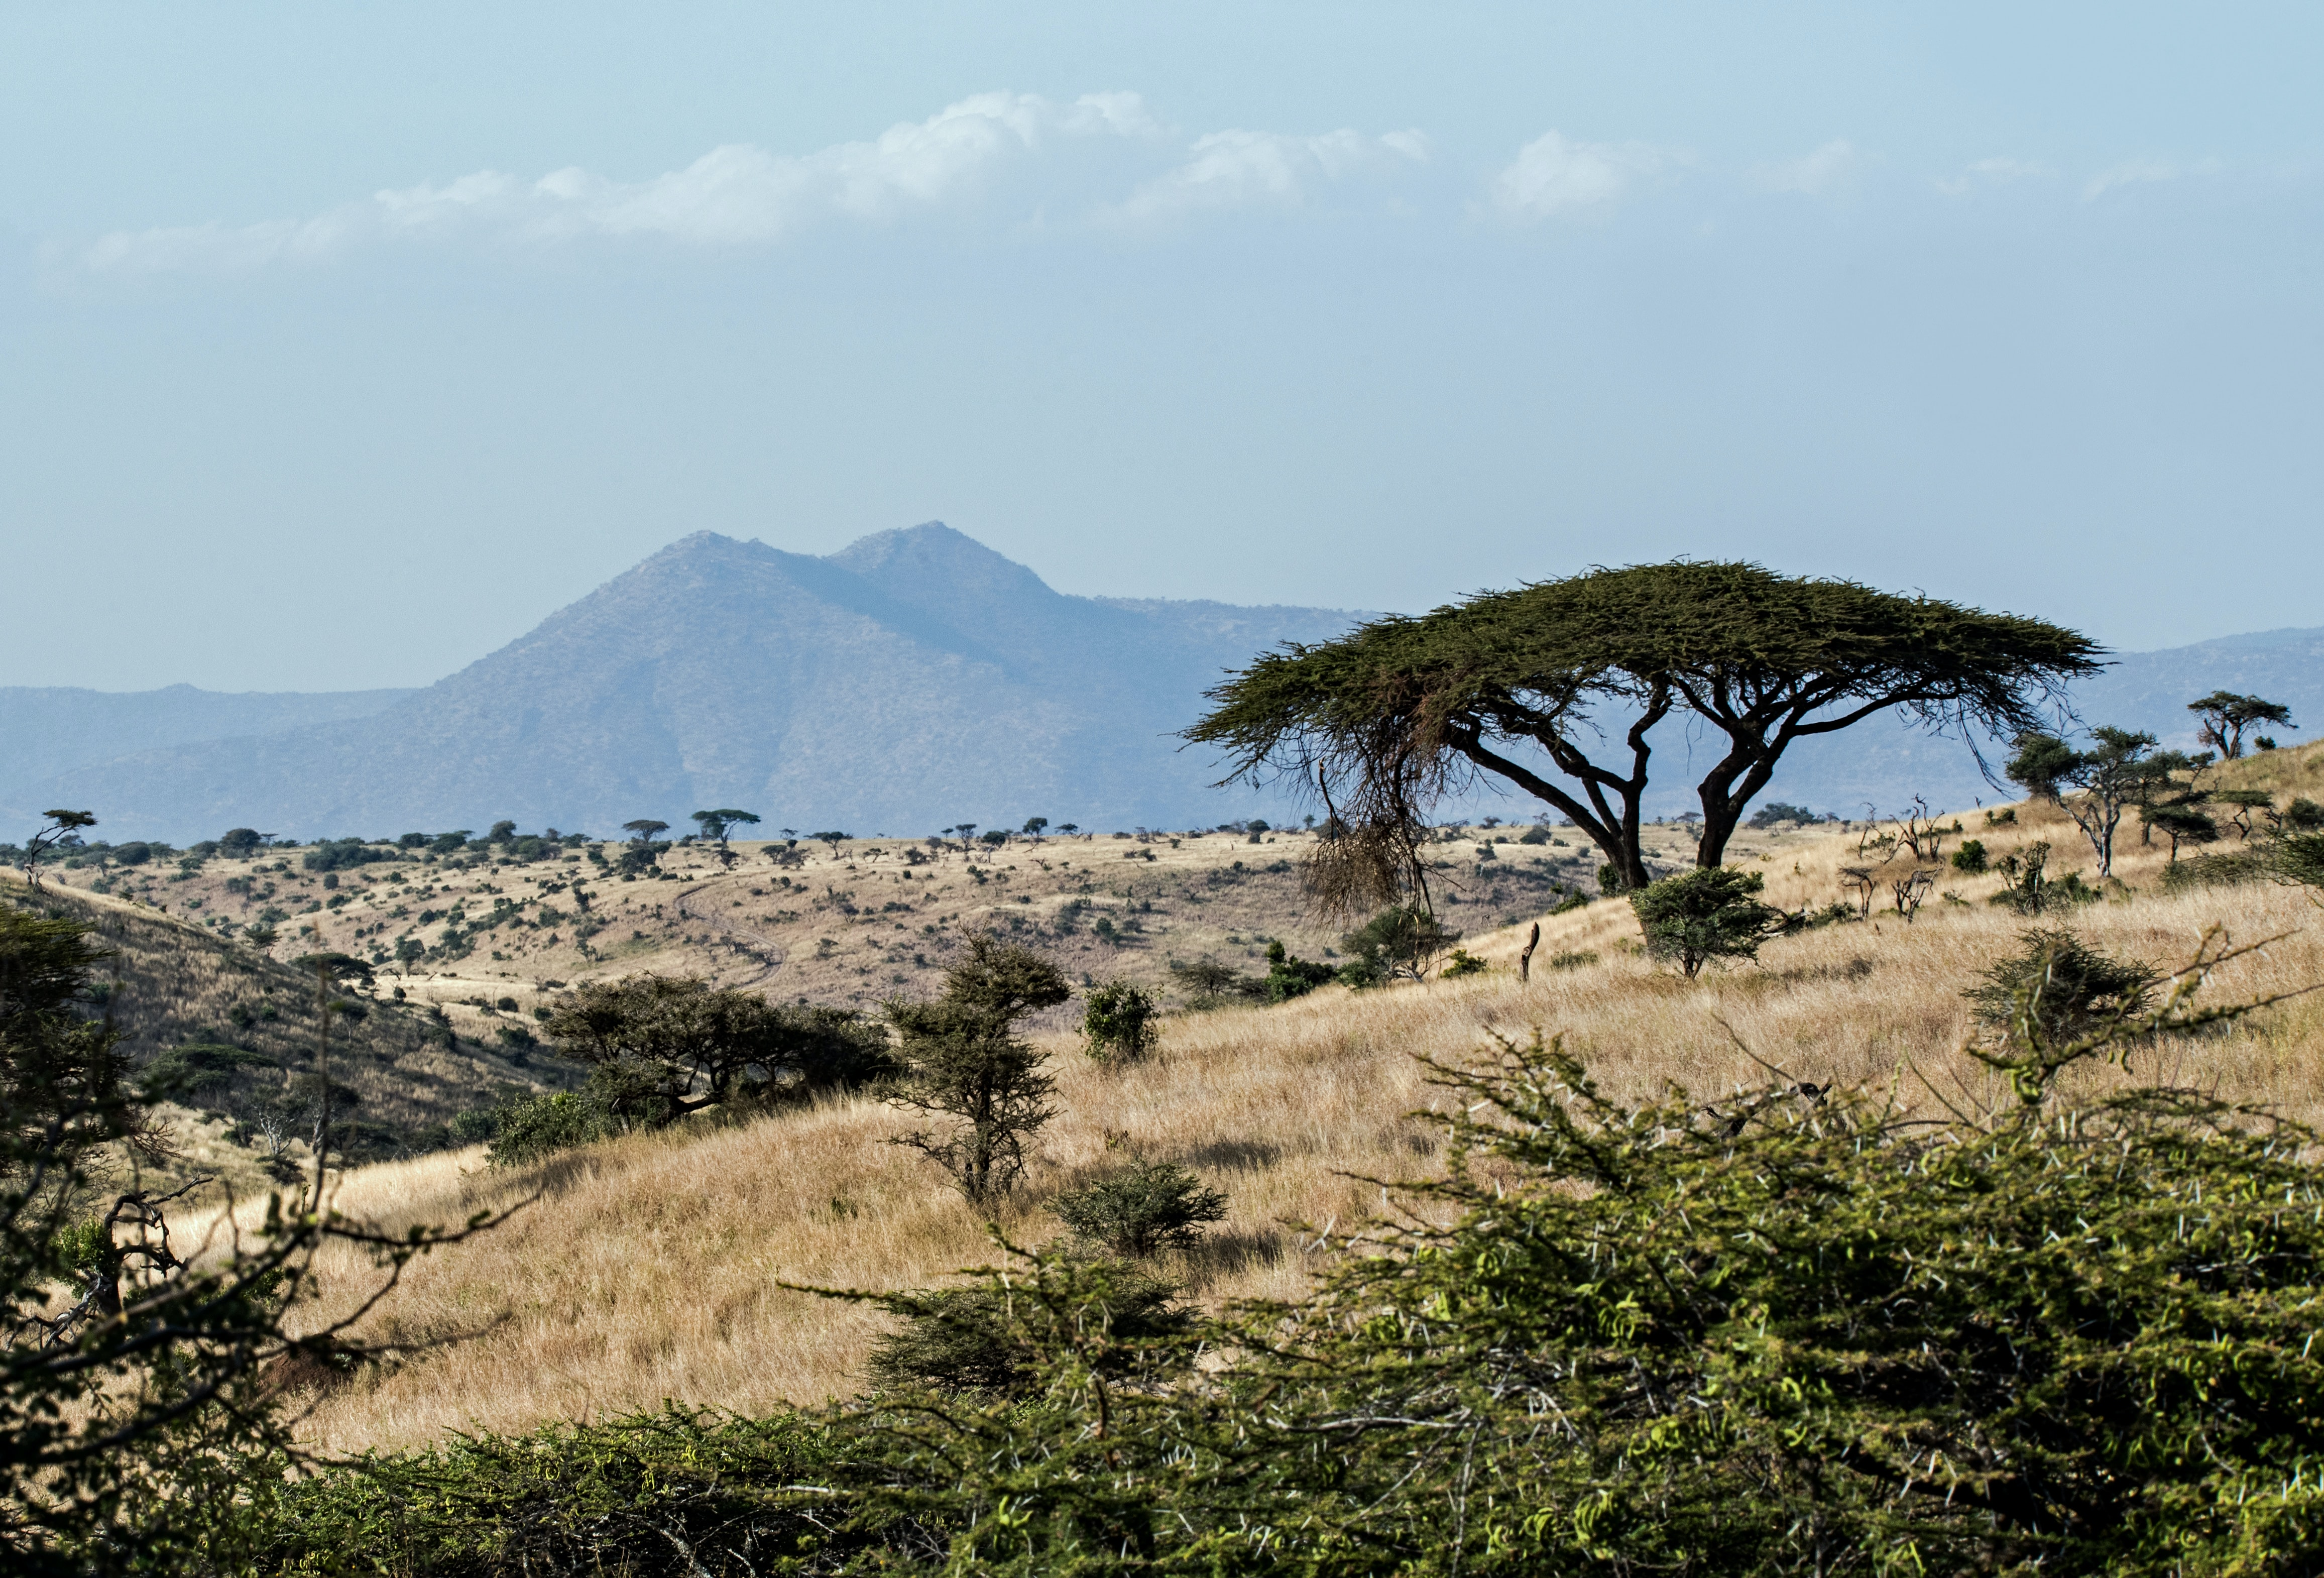 Mid-Term Review for Mount Kenya East Pilot Project for Natural Resource Management